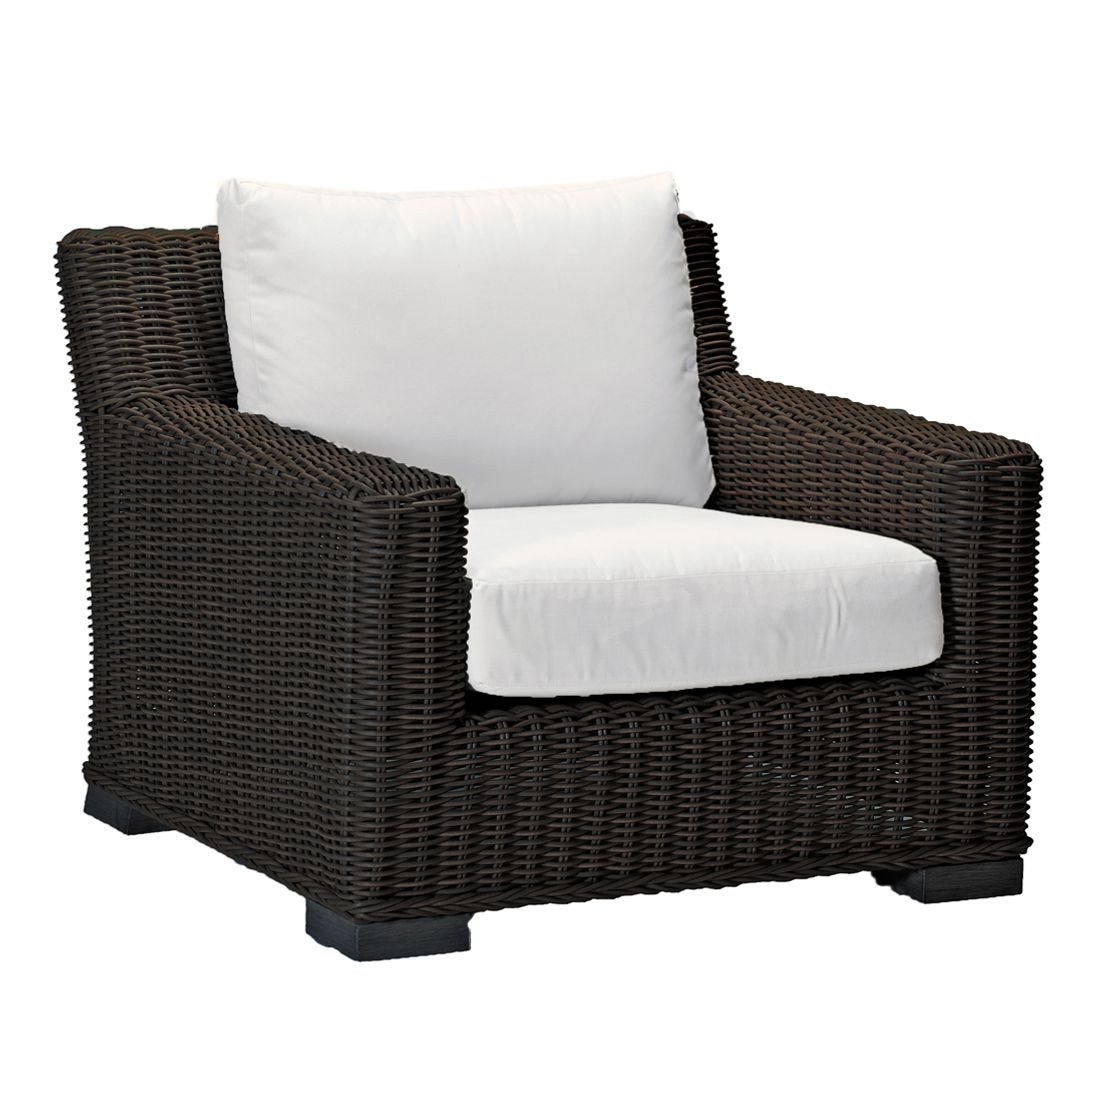 Summer Classics Rustic Lounge Chair INTERIORS